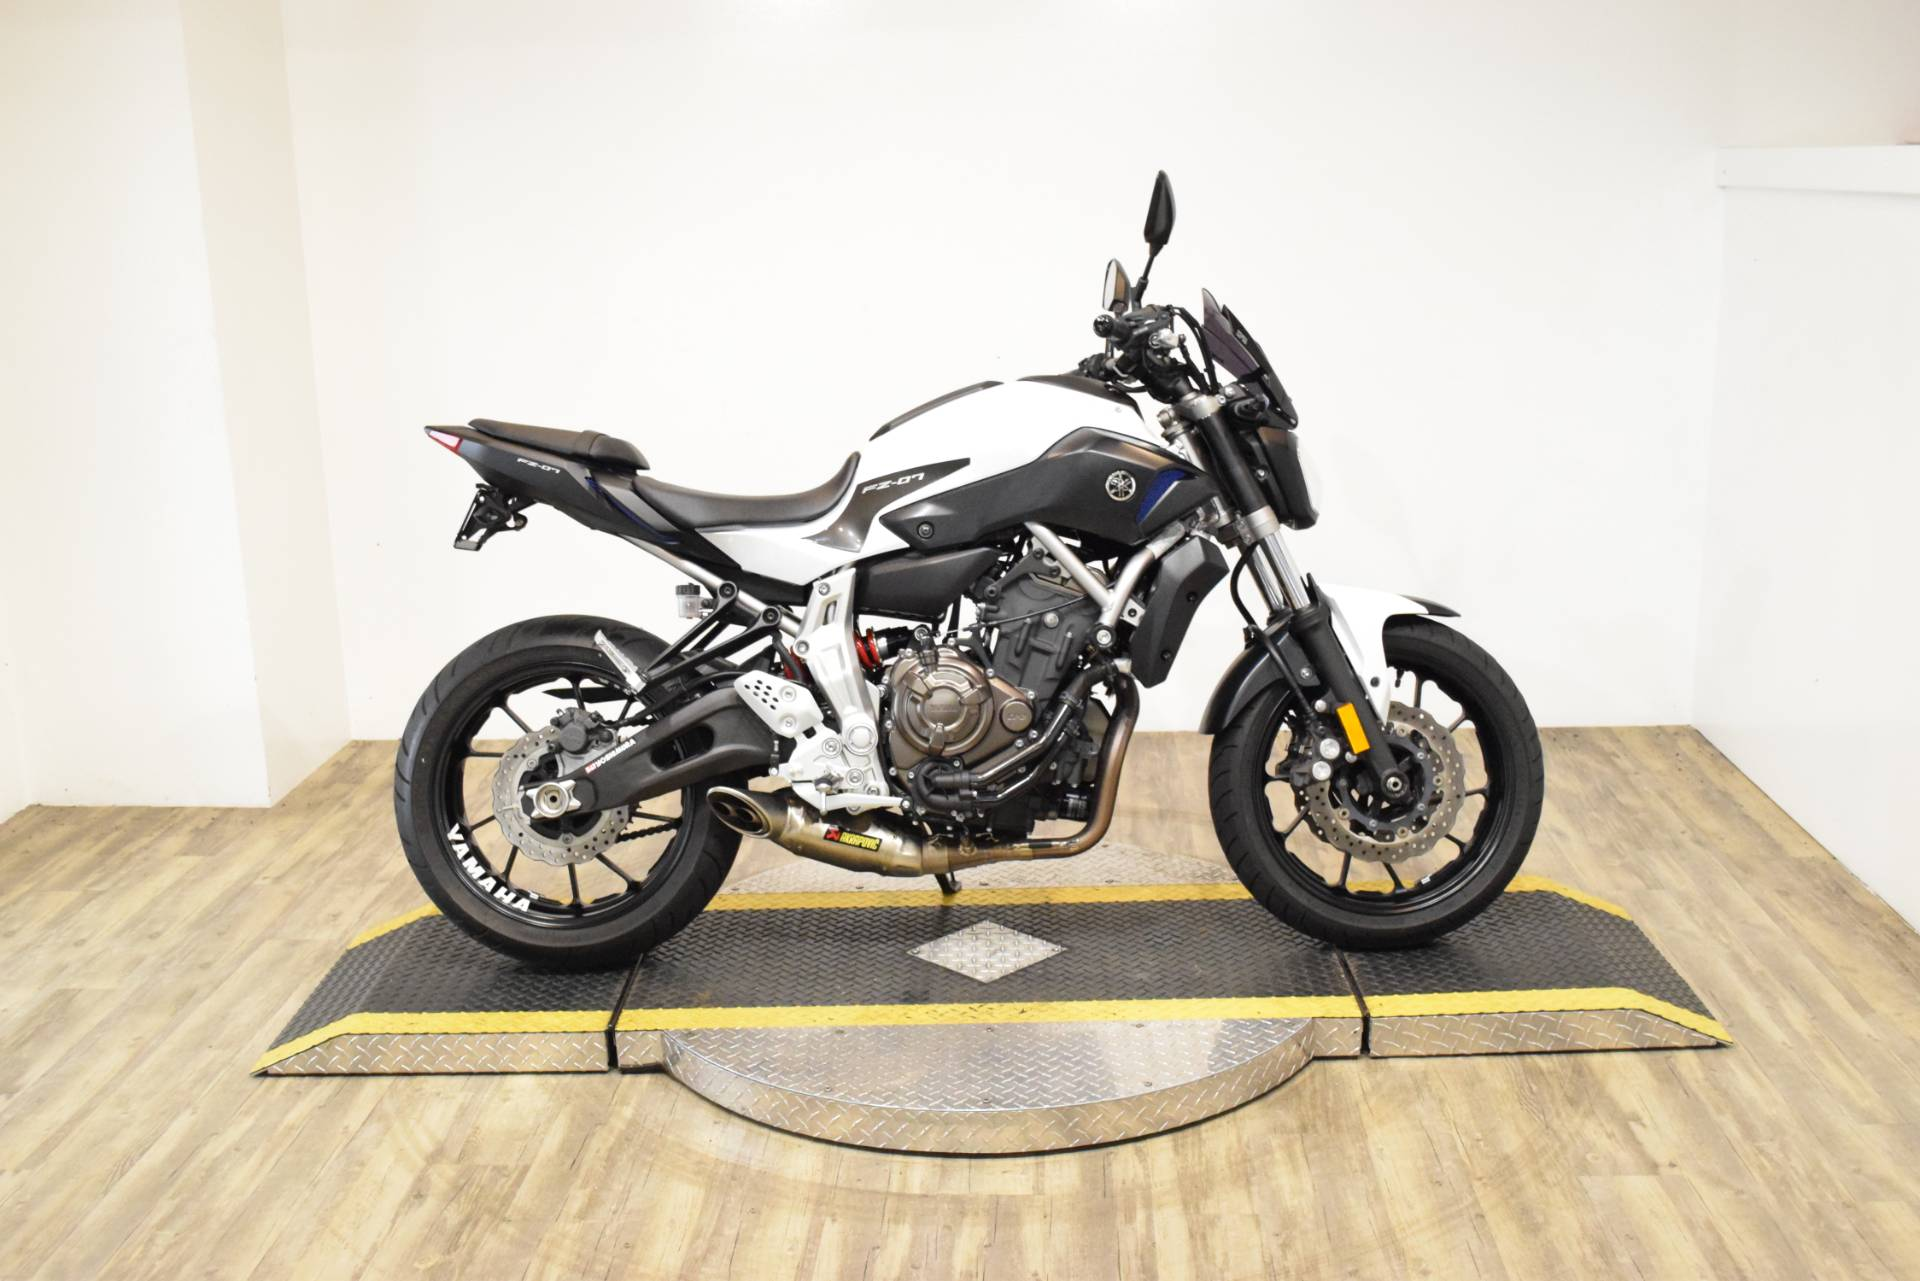 2015 Yamaha FZ-07 for sale 207255